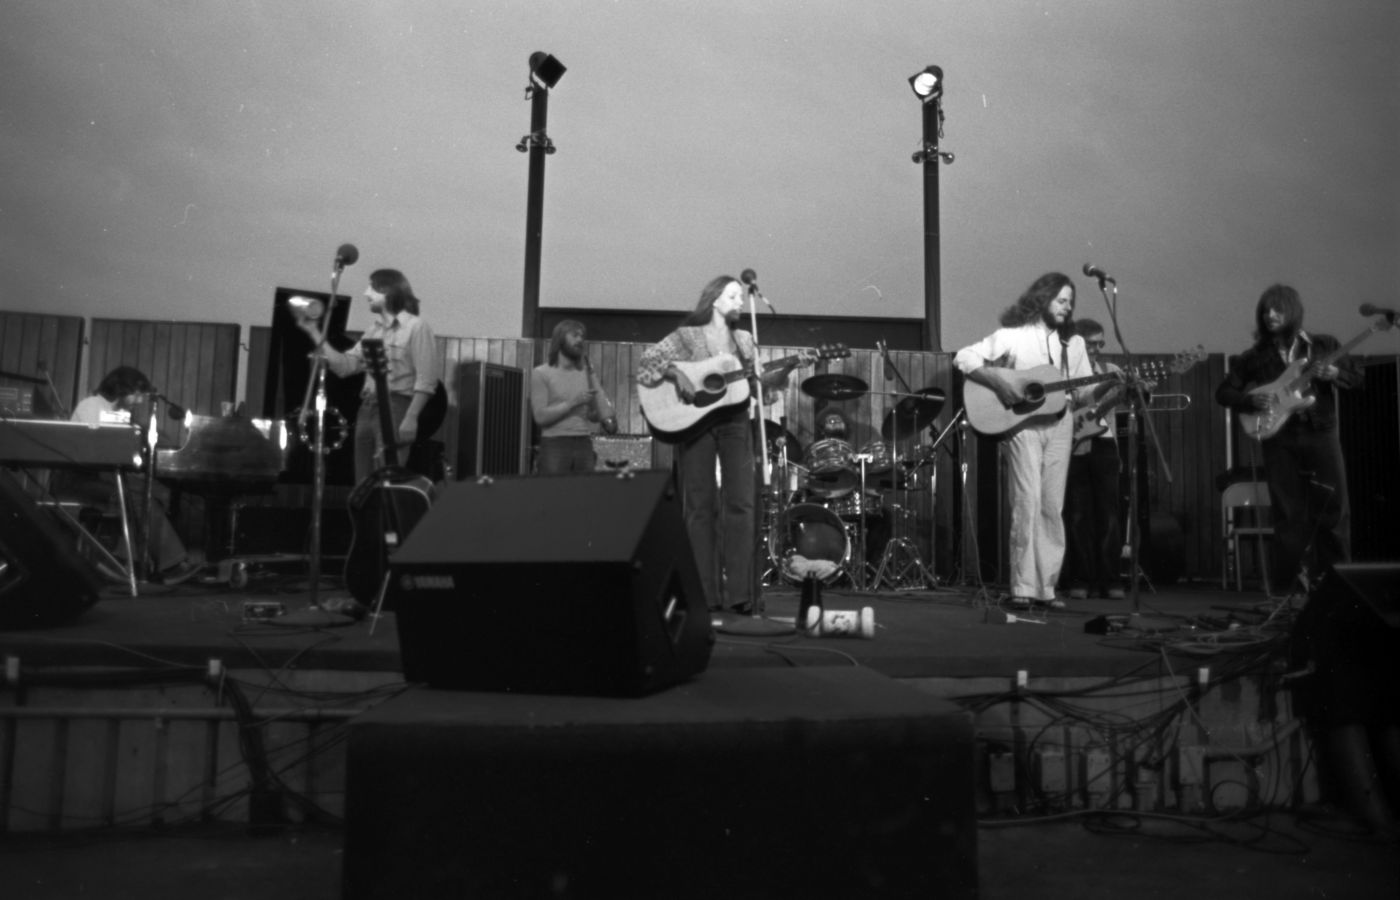 """Black and white photograph of seven musicians (three guitarists, a bassist, a pianist, and two percussionists) on an outdoor stage in dim light. The group includes six long-haired men and a woman, of mature age, wearing casual clothes.  """